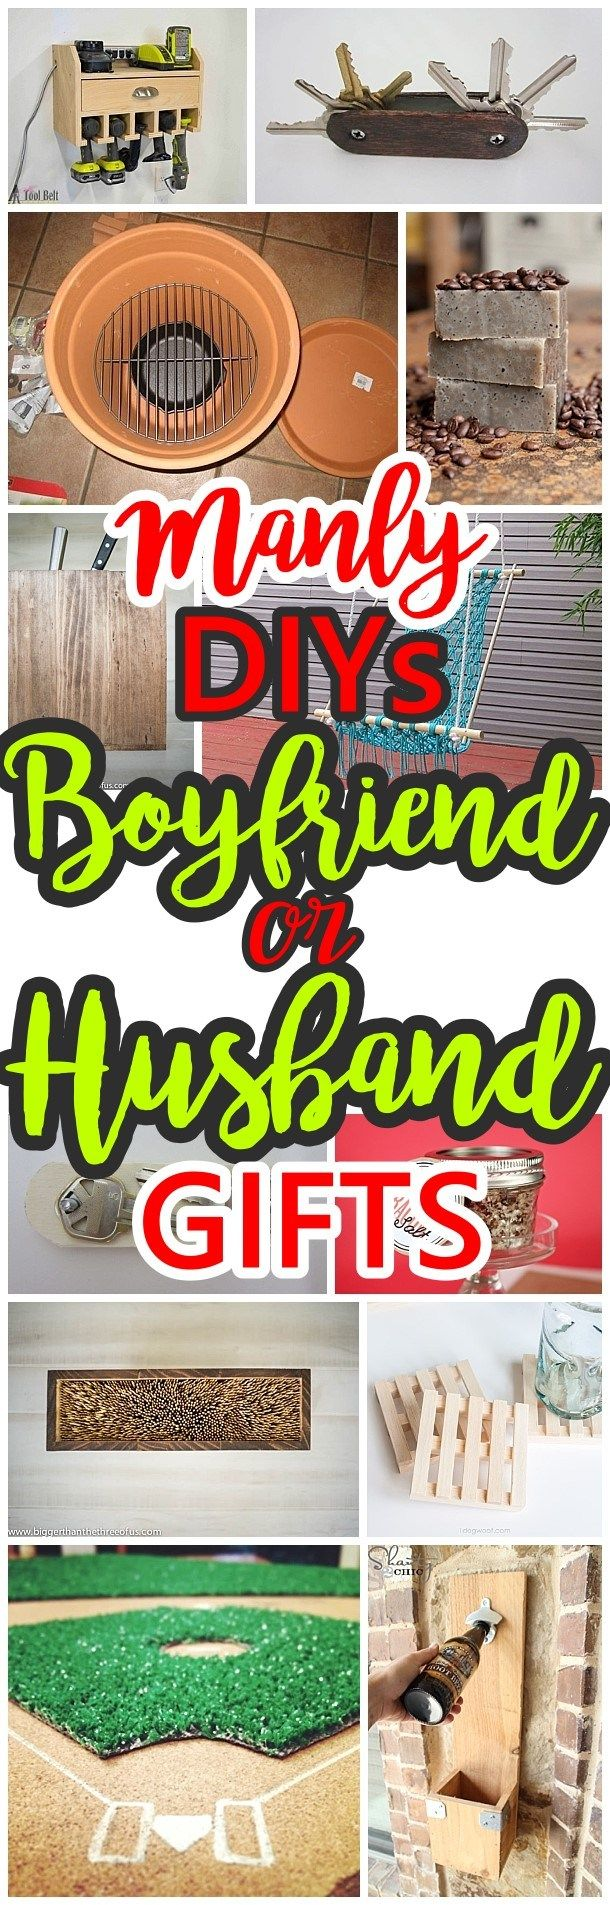 Manly do it yourself boyfriend and husband gift ideas masculine manly do it yourself boyfriend and husband gift ideas masculine diy crafts projects boyfriends husbands sons and brothers will love solutioingenieria Image collections